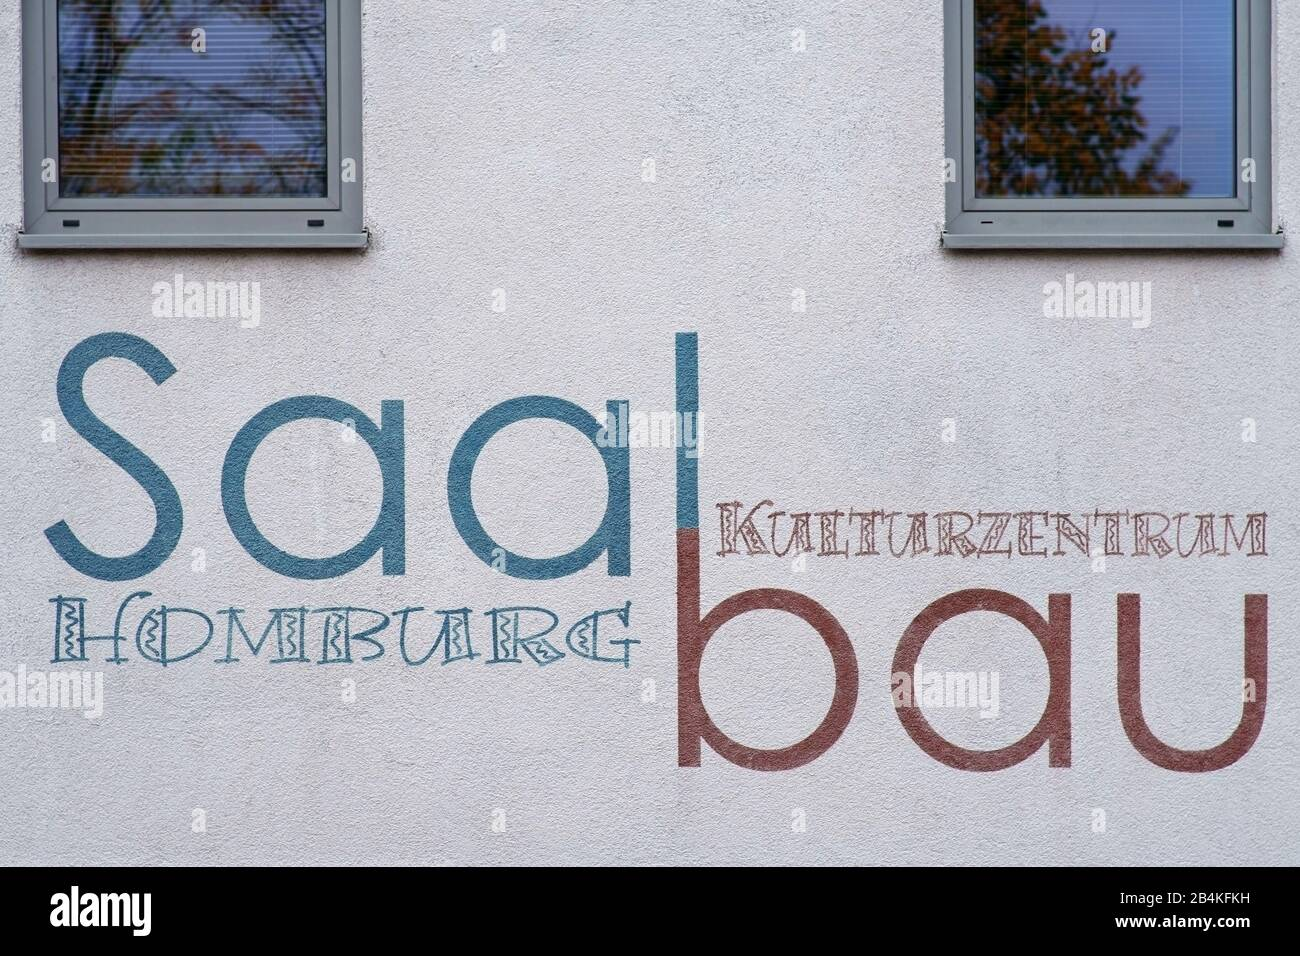 A section of the facade of the Kulturzentrum Saalbau Homburg of an event hall in Homburg. Stock Photo